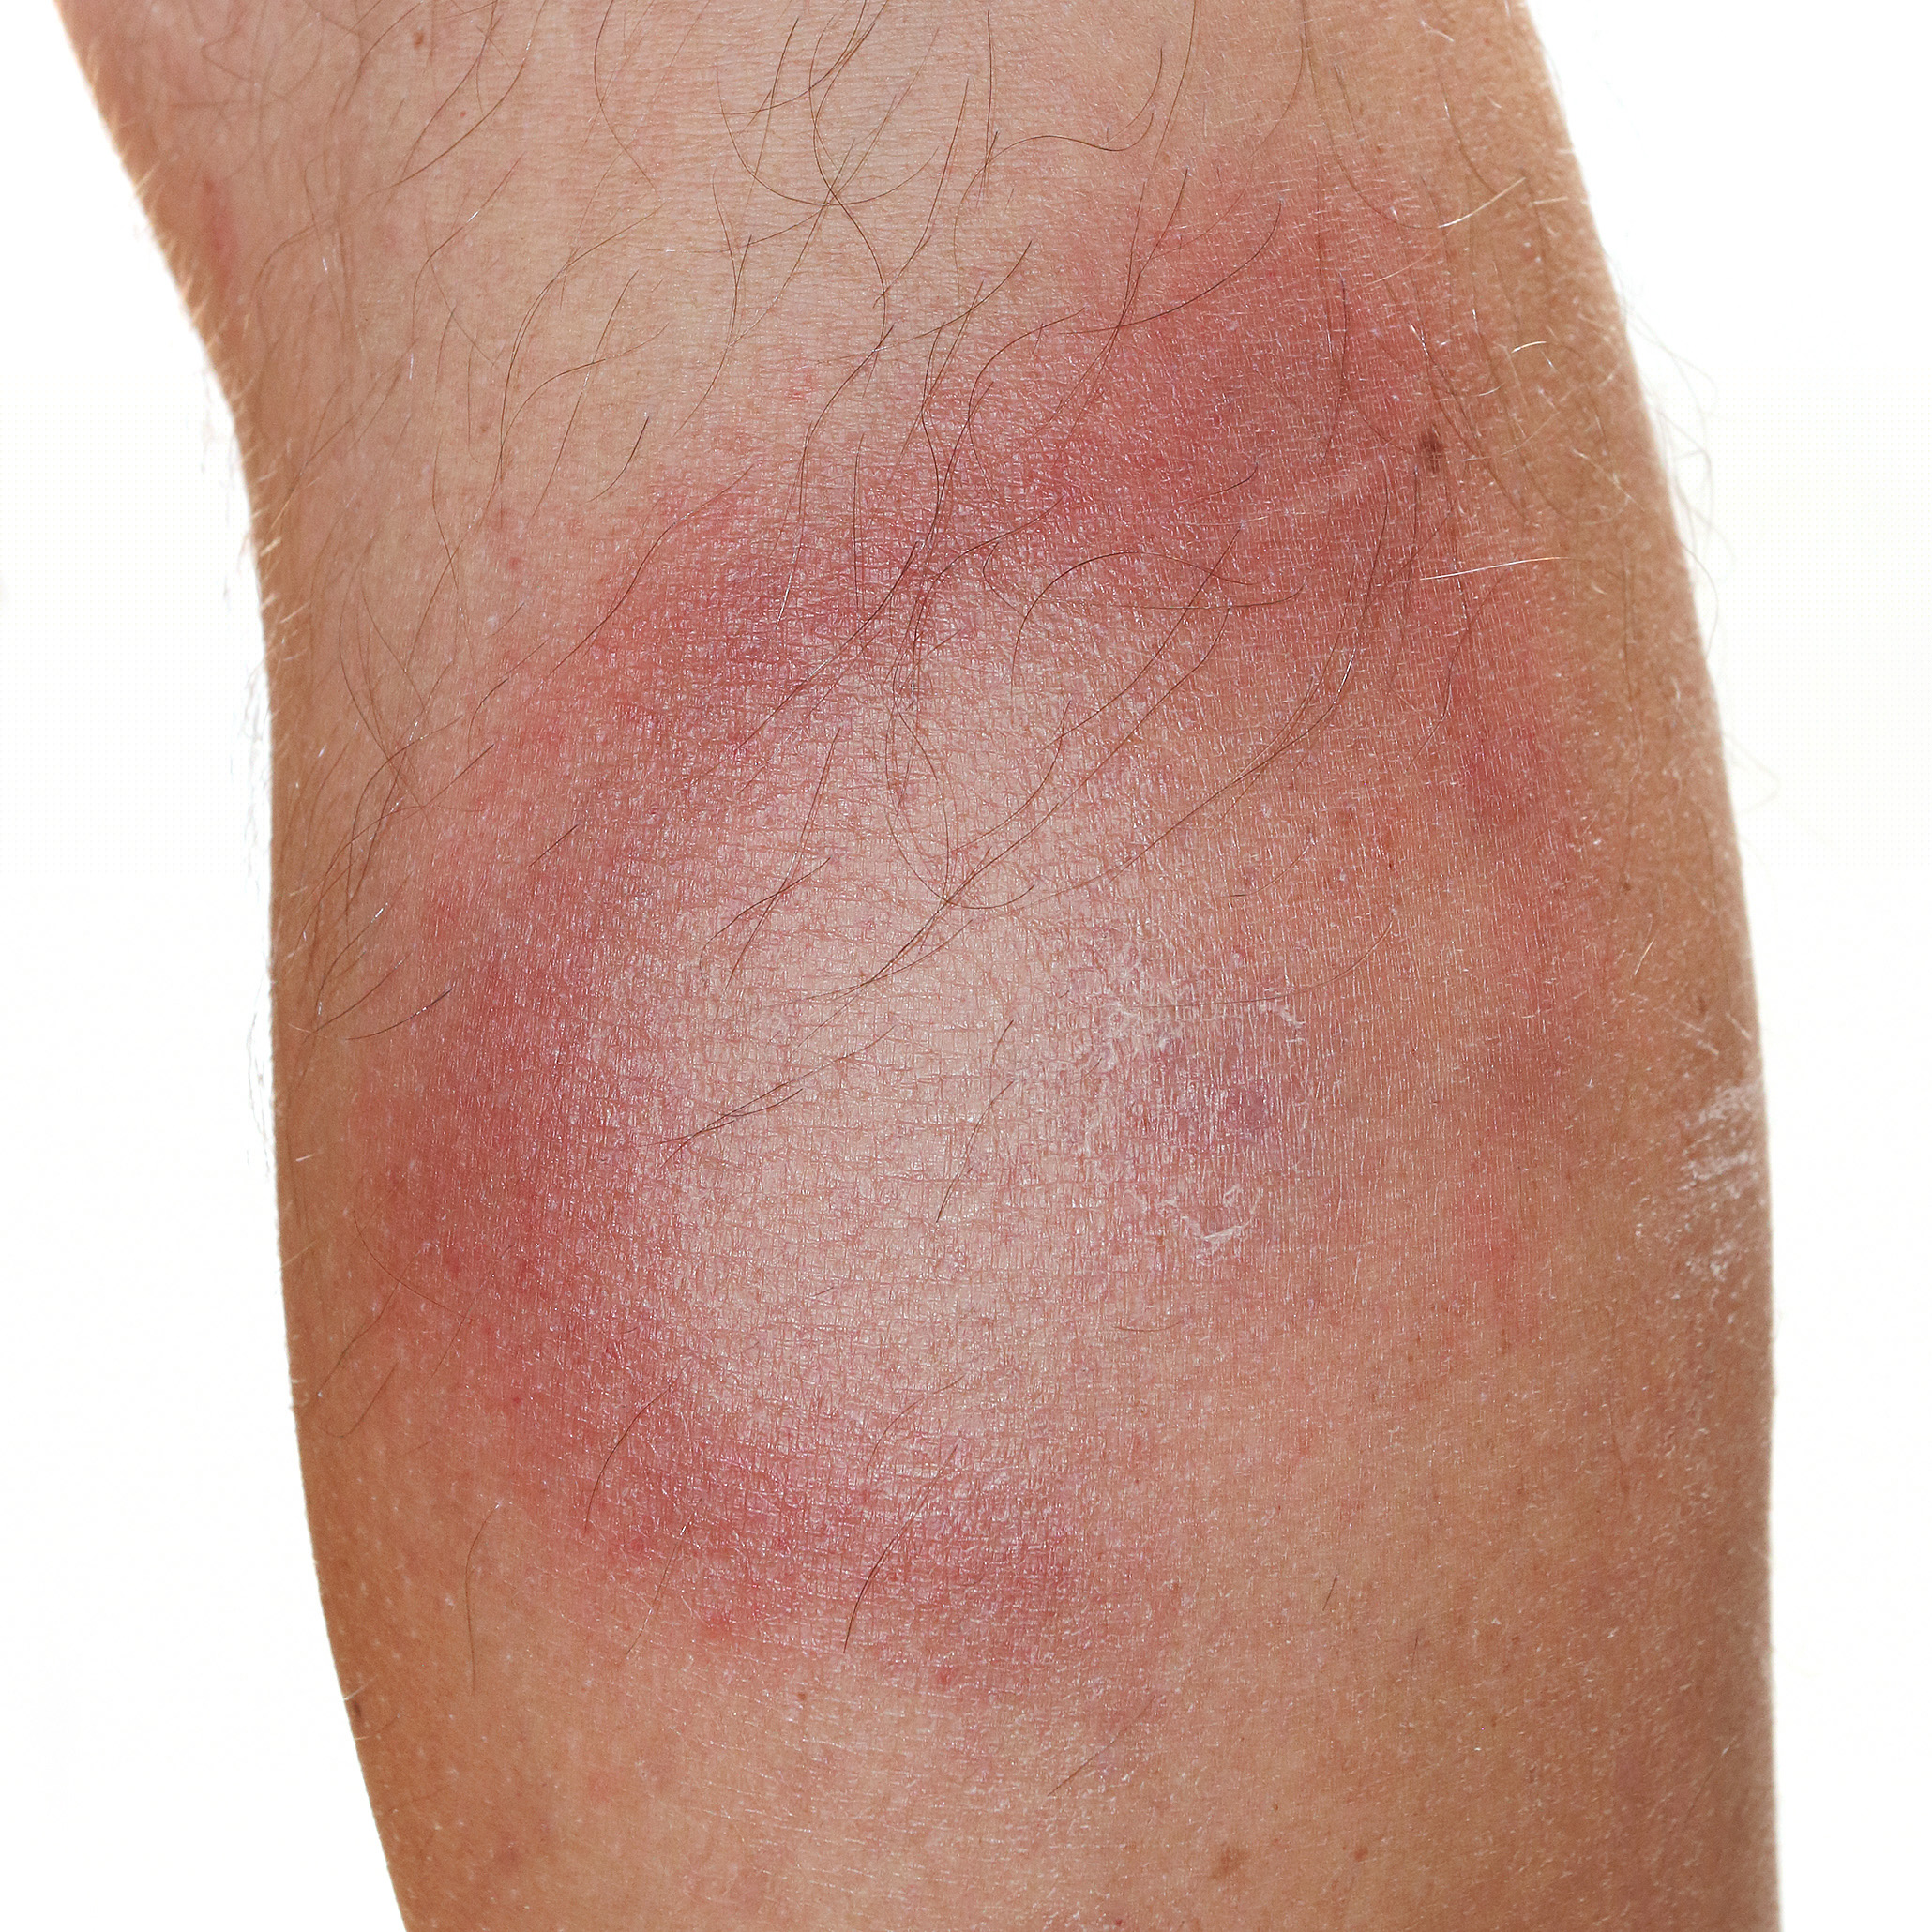 Erythema chronicum migrans